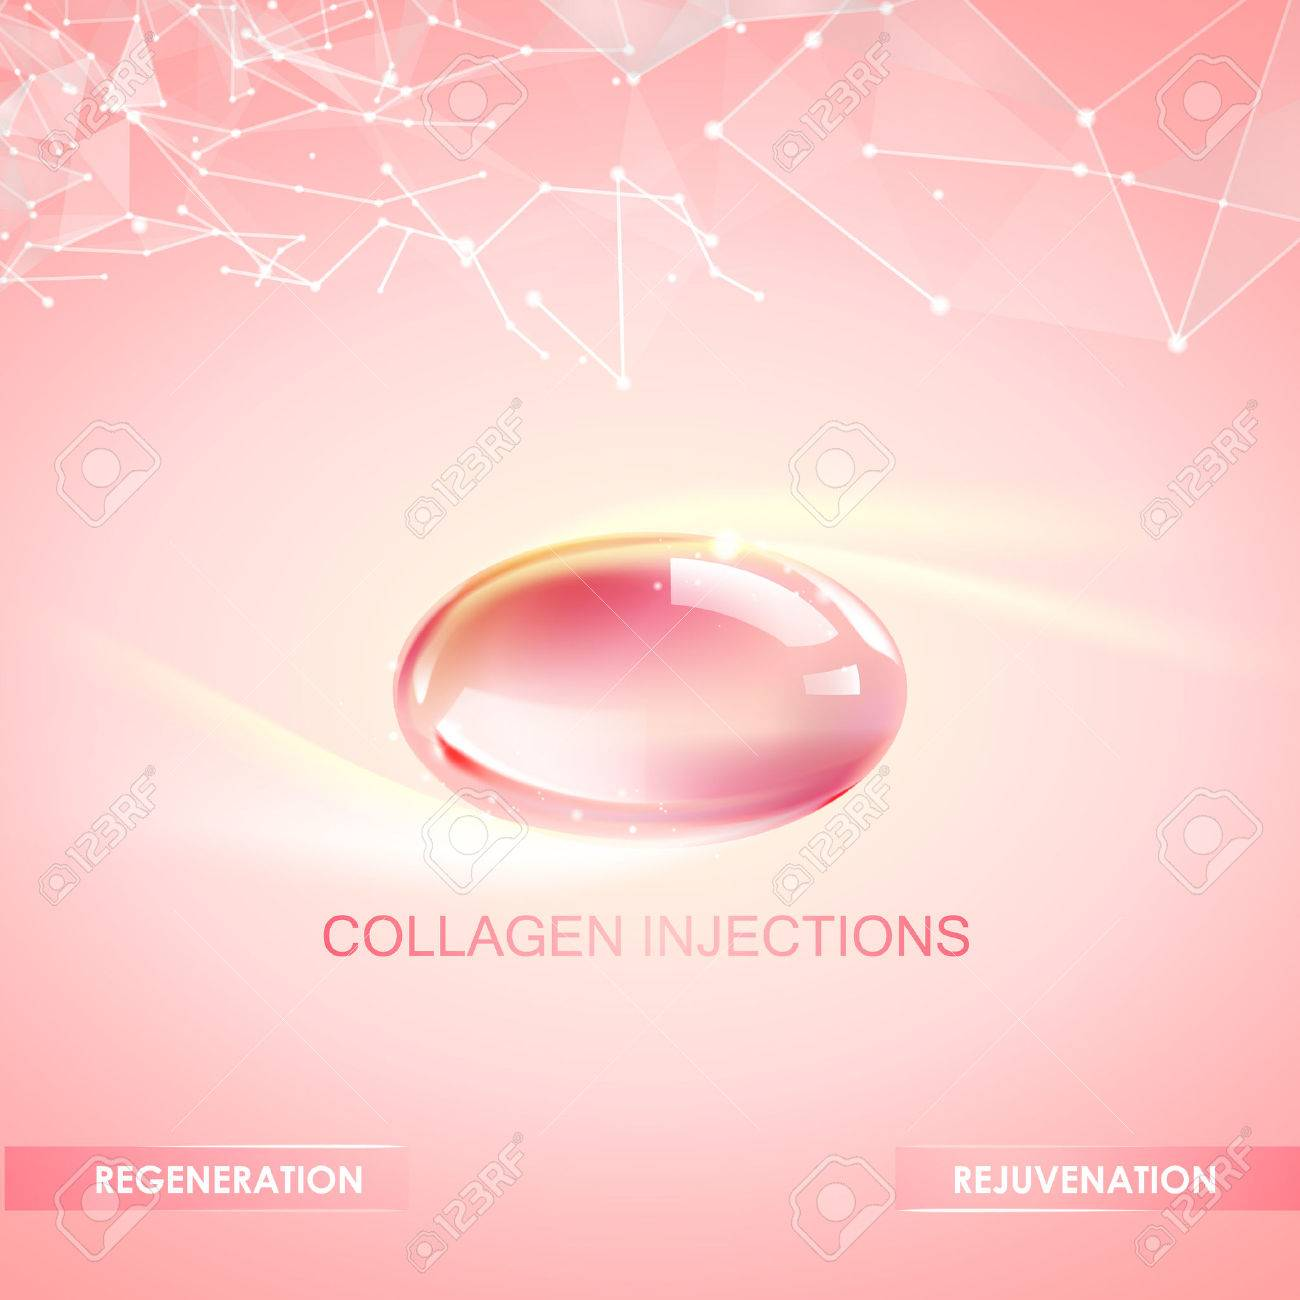 Collagen natural product label design for cosmetic surgery. Bright illustration over pink background. - 61113046